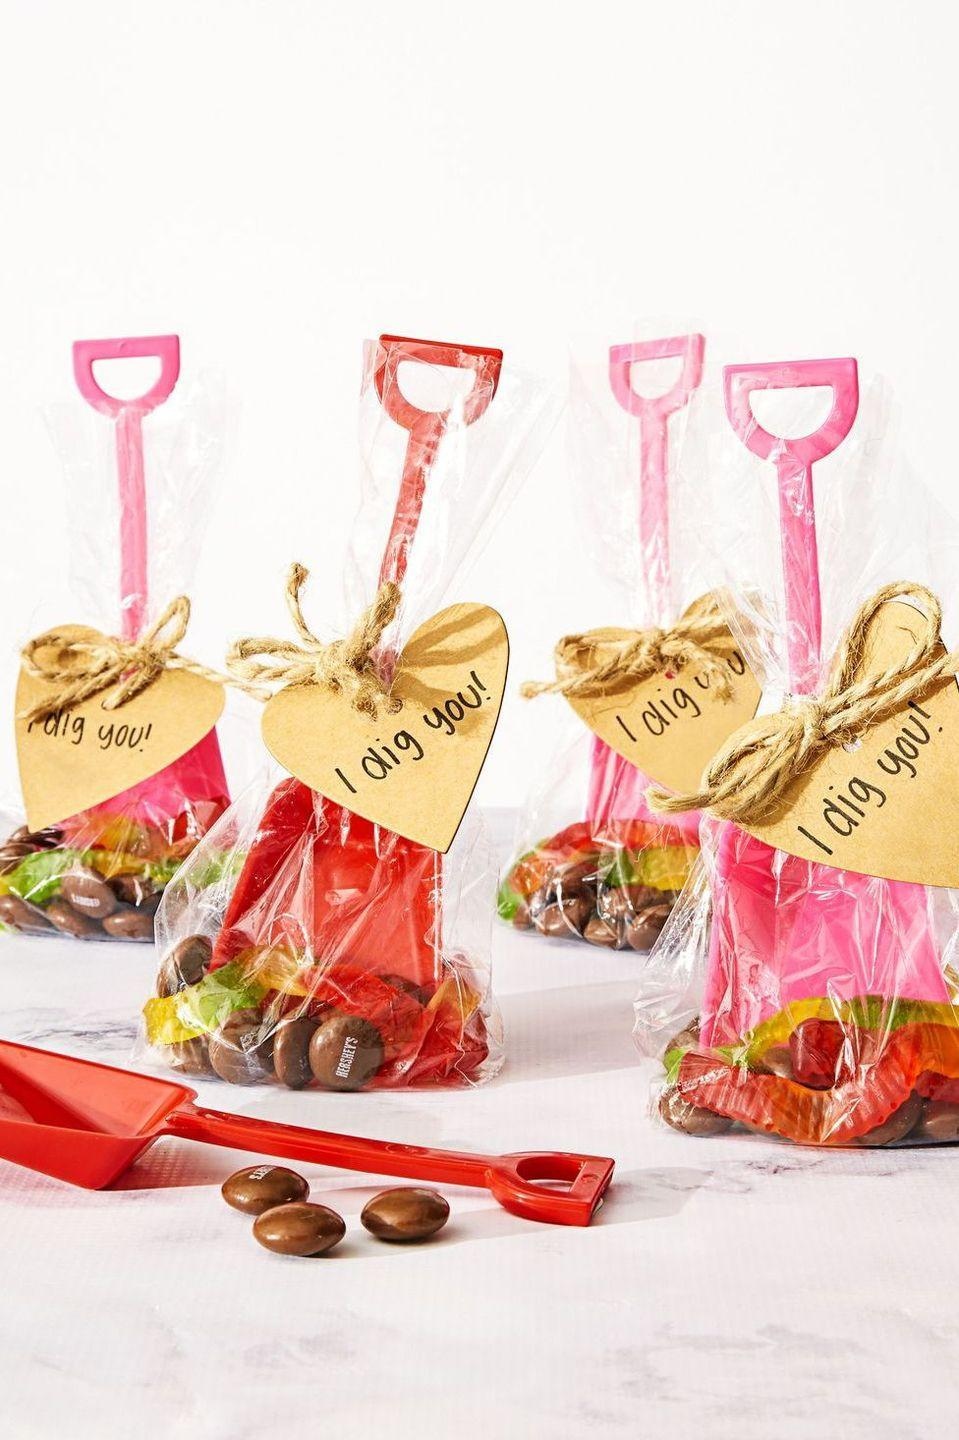 """<p>Pack these goodie bags with chocolate drops and gummy worms to resemble the great outdoors.</p><p><em><a href=""""https://www.goodhousekeeping.com/holidays/valentines-day-ideas/a36394/valentines-day-craft-goodie-bags/"""" rel=""""nofollow noopener"""" target=""""_blank"""" data-ylk=""""slk:Get the tutorial »"""" class=""""link rapid-noclick-resp"""">Get the tutorial »</a></em></p>"""